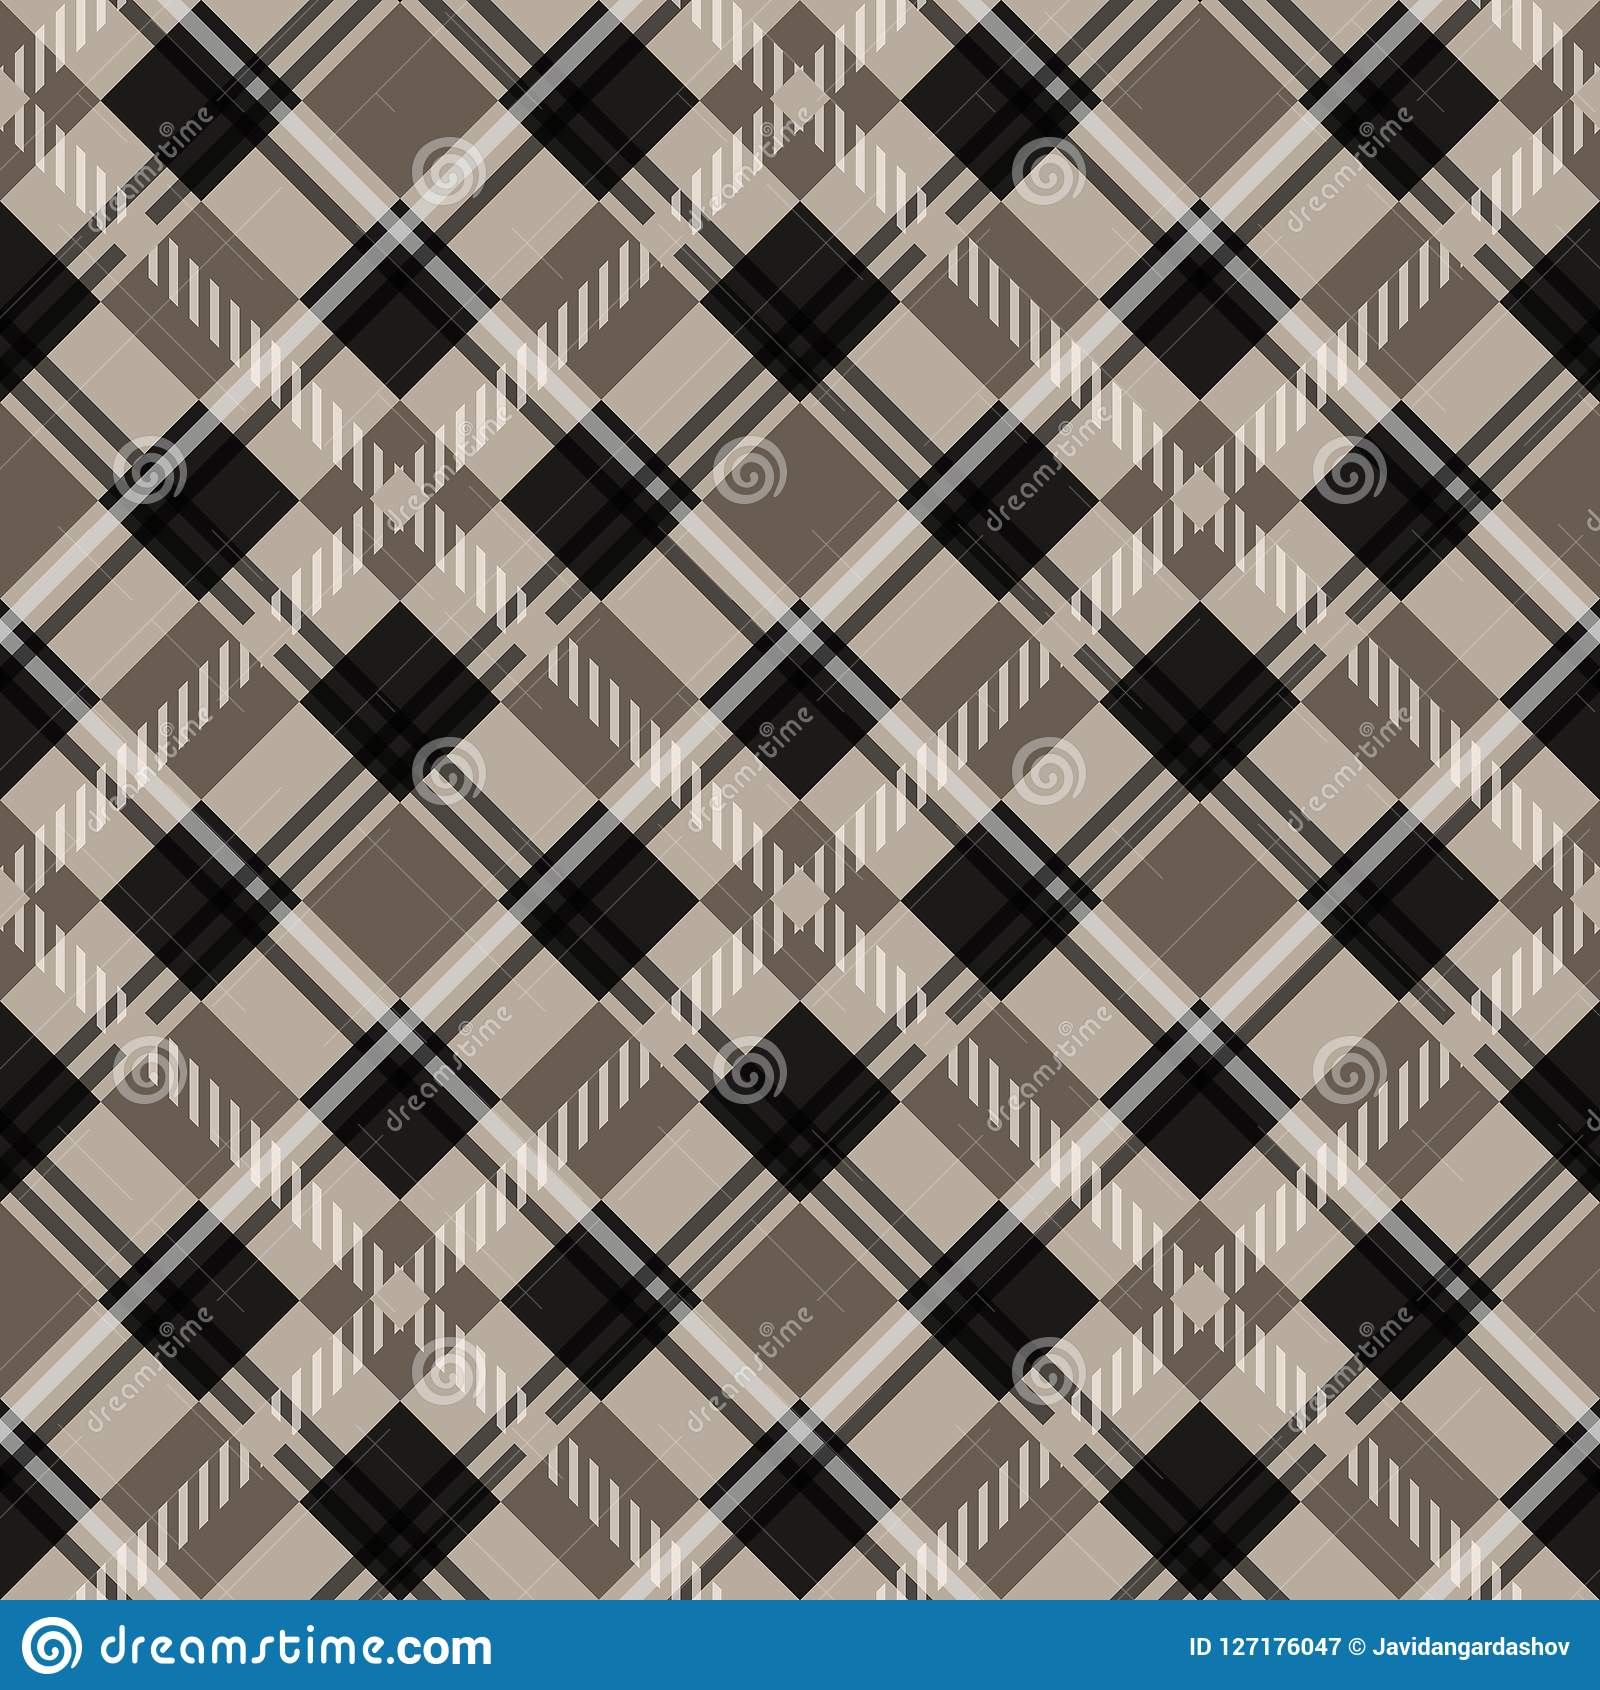 Suits for Decorative Paper Fashion Design and House Interior Design as Well as for Hand Crafts eps10 & Tartan Seamless Pattern. Trendy Vector Illustration For Wallpapers ...